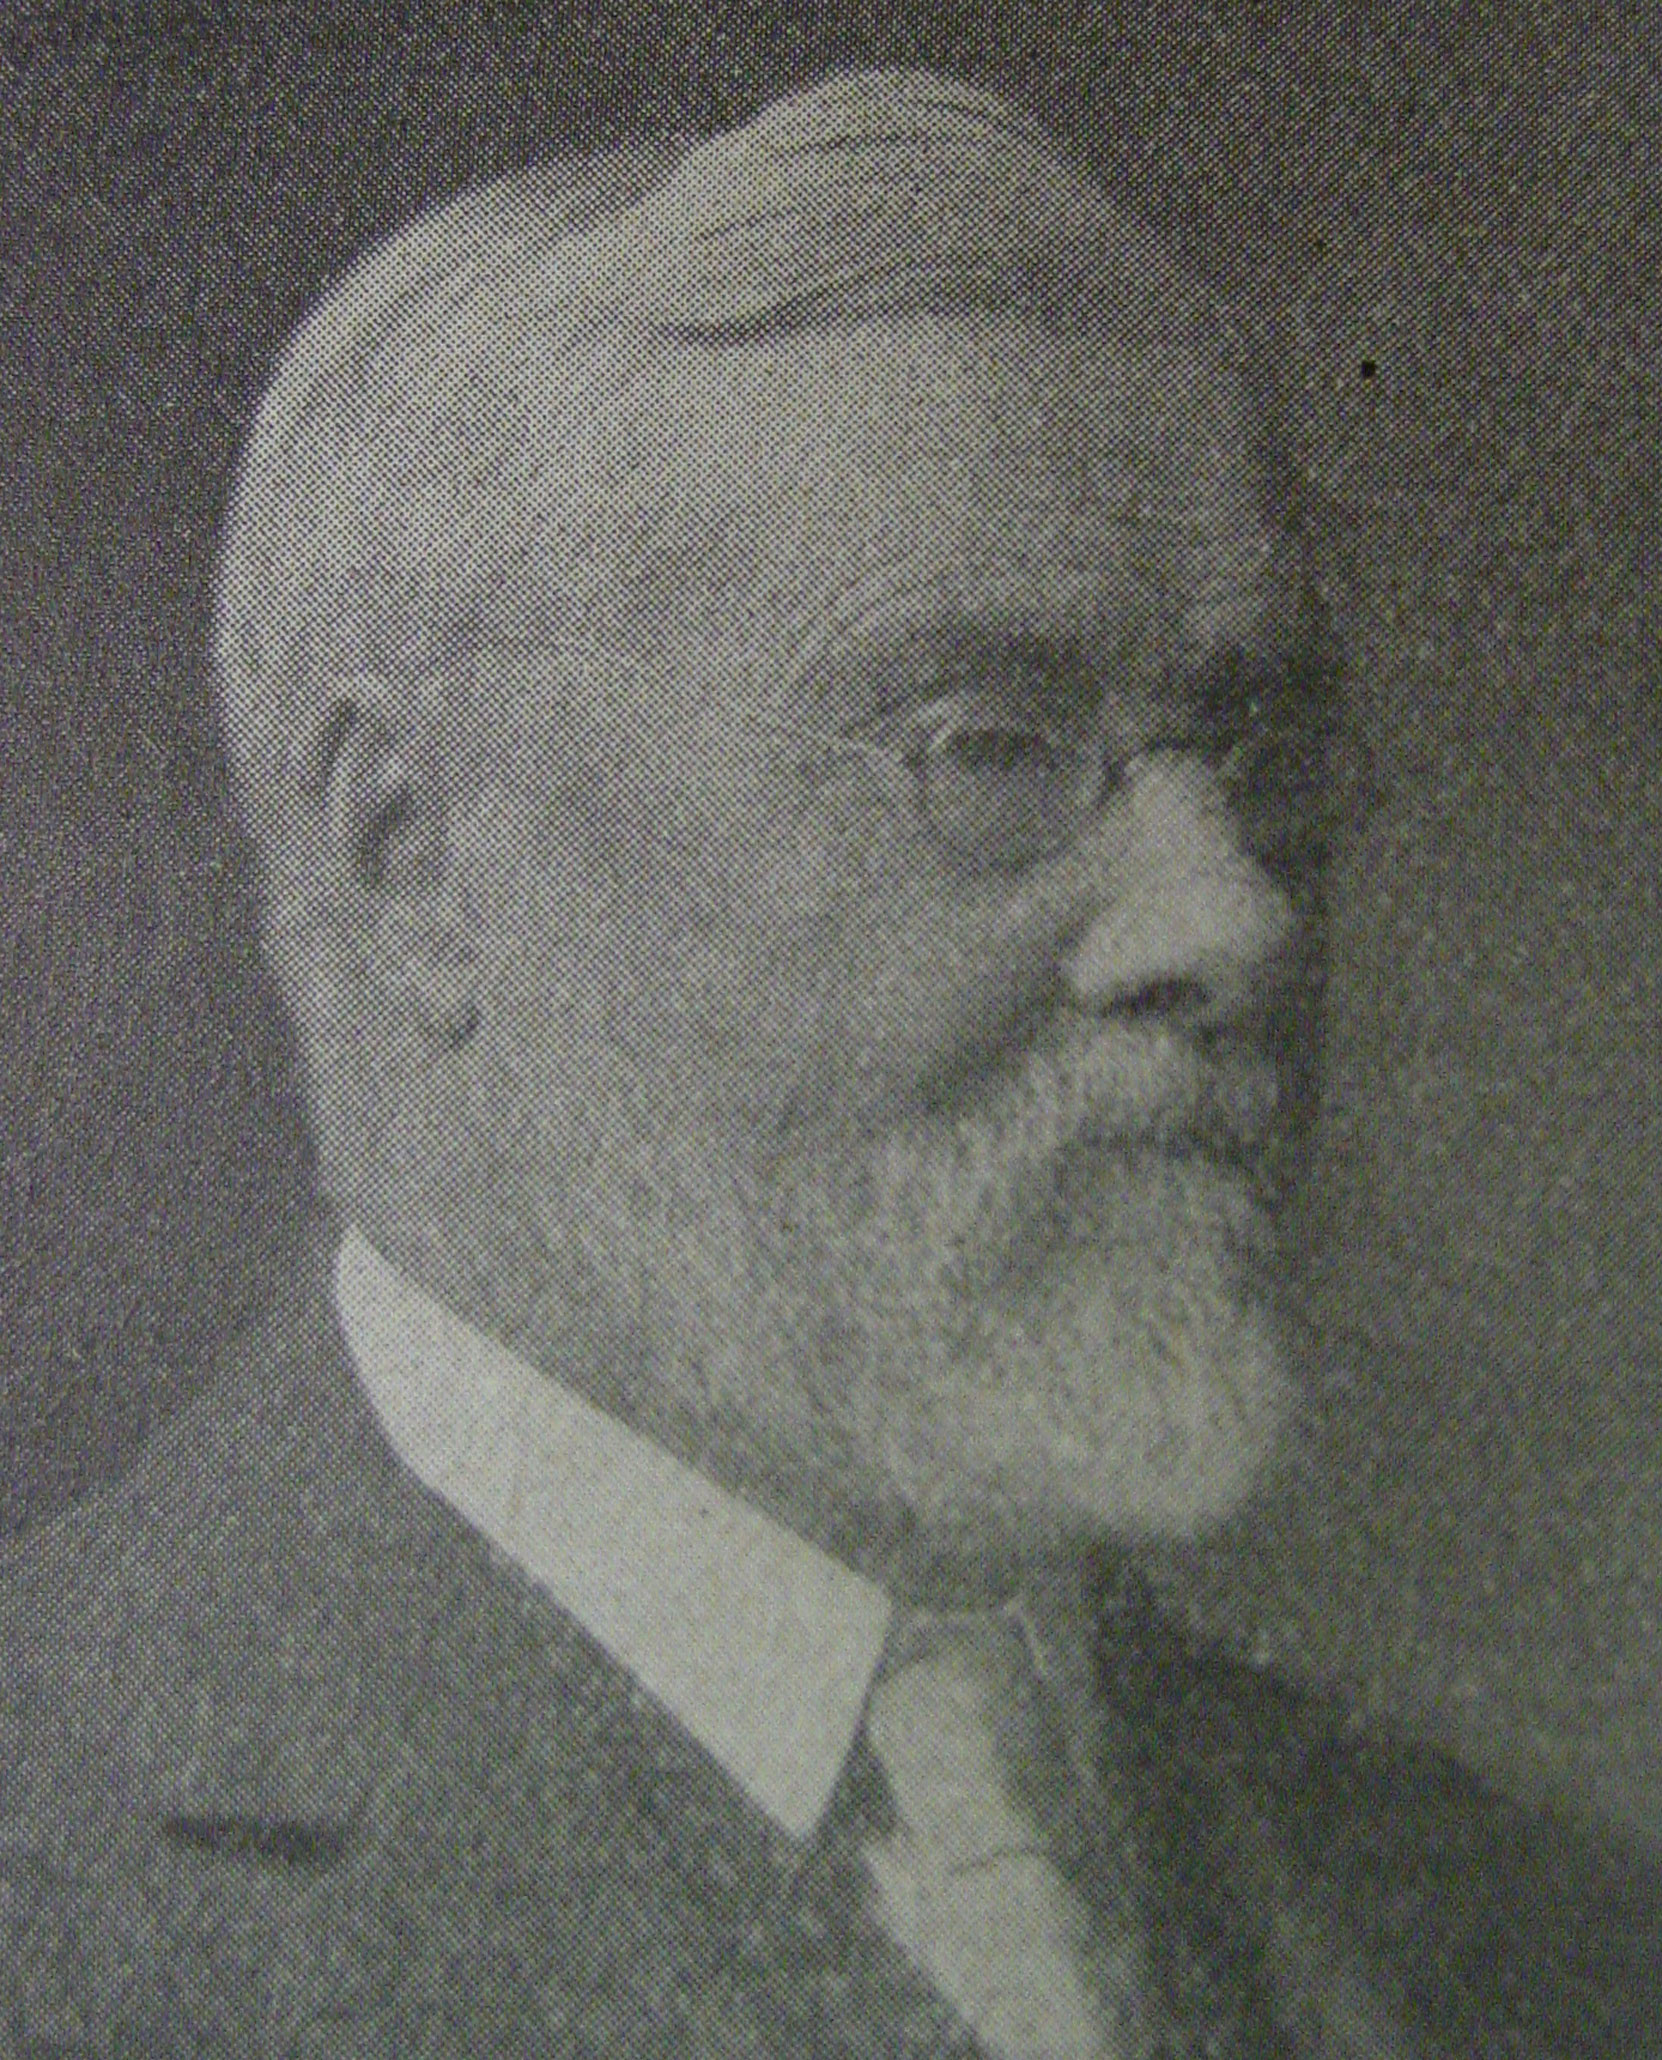 William Henry Pearson, circa 1917 (Author's collection)